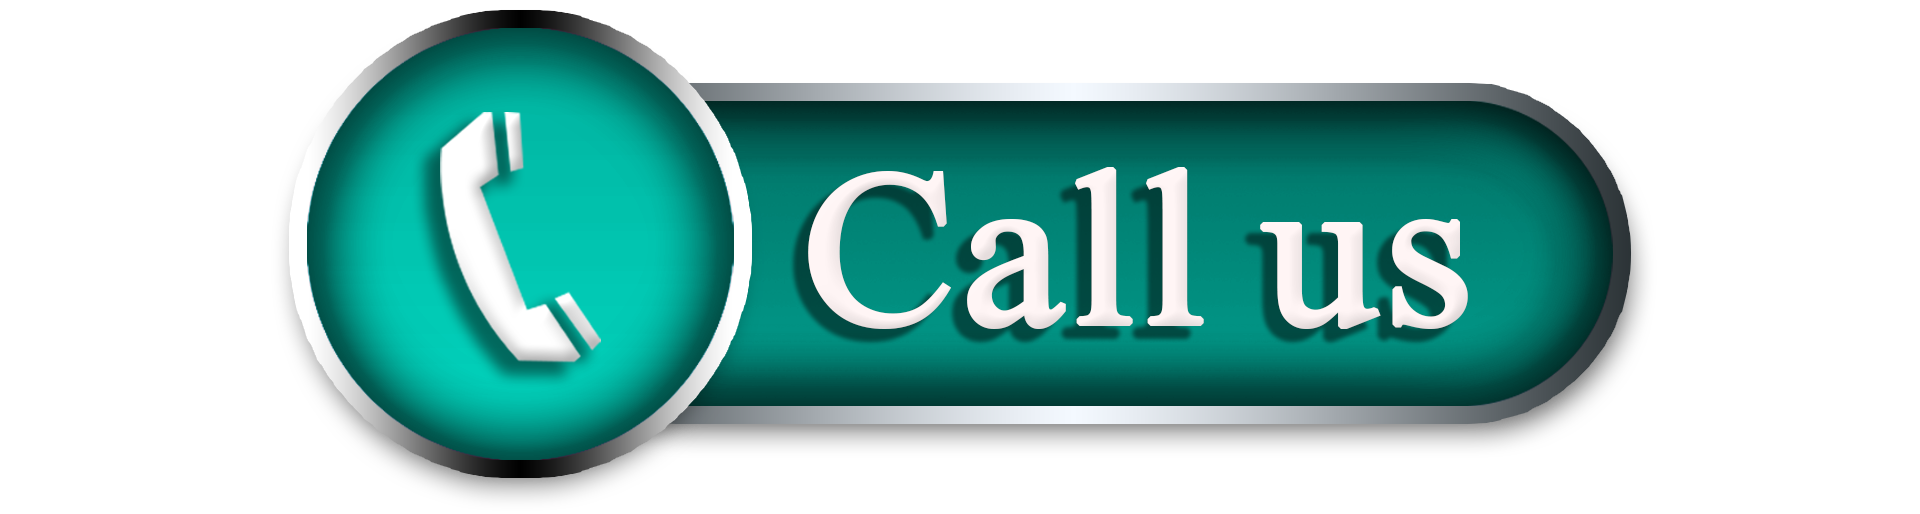 Green and black call us image with a telephone handset on the Pro Tax & Accounting Contact Us page